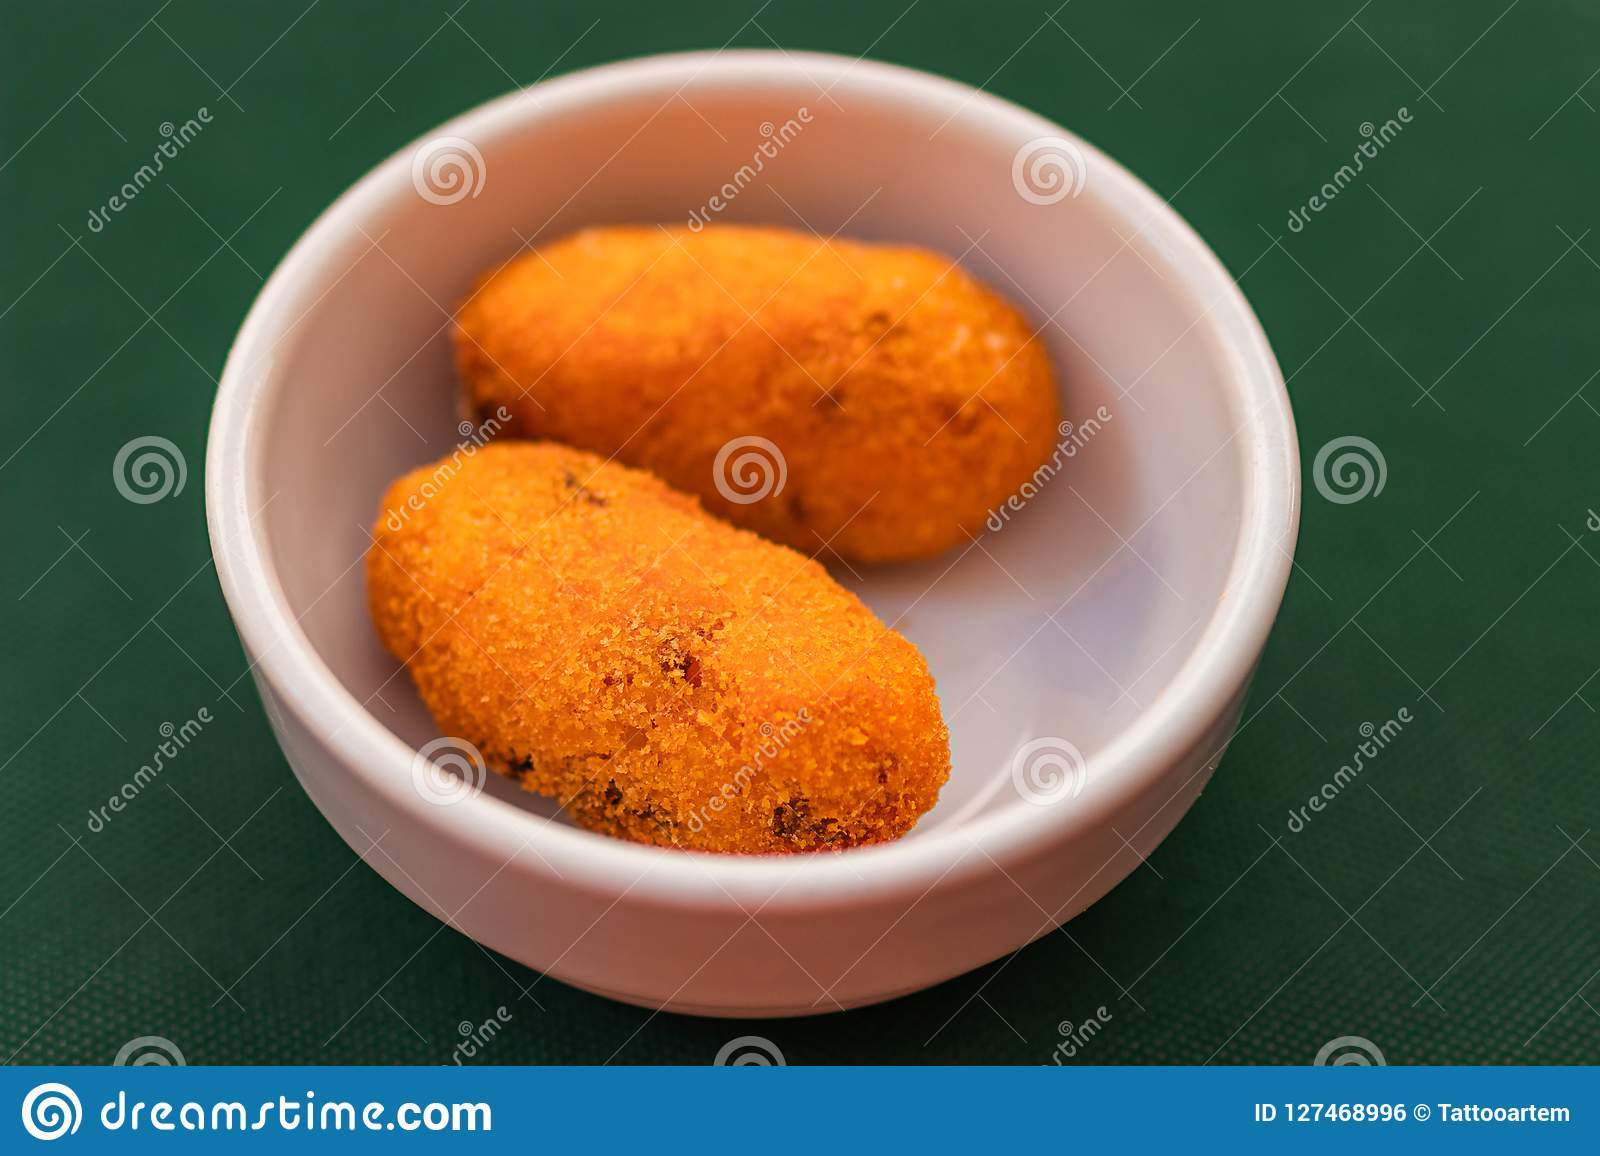 Arancini / Supli deep fried rice balls with meat or vegetables